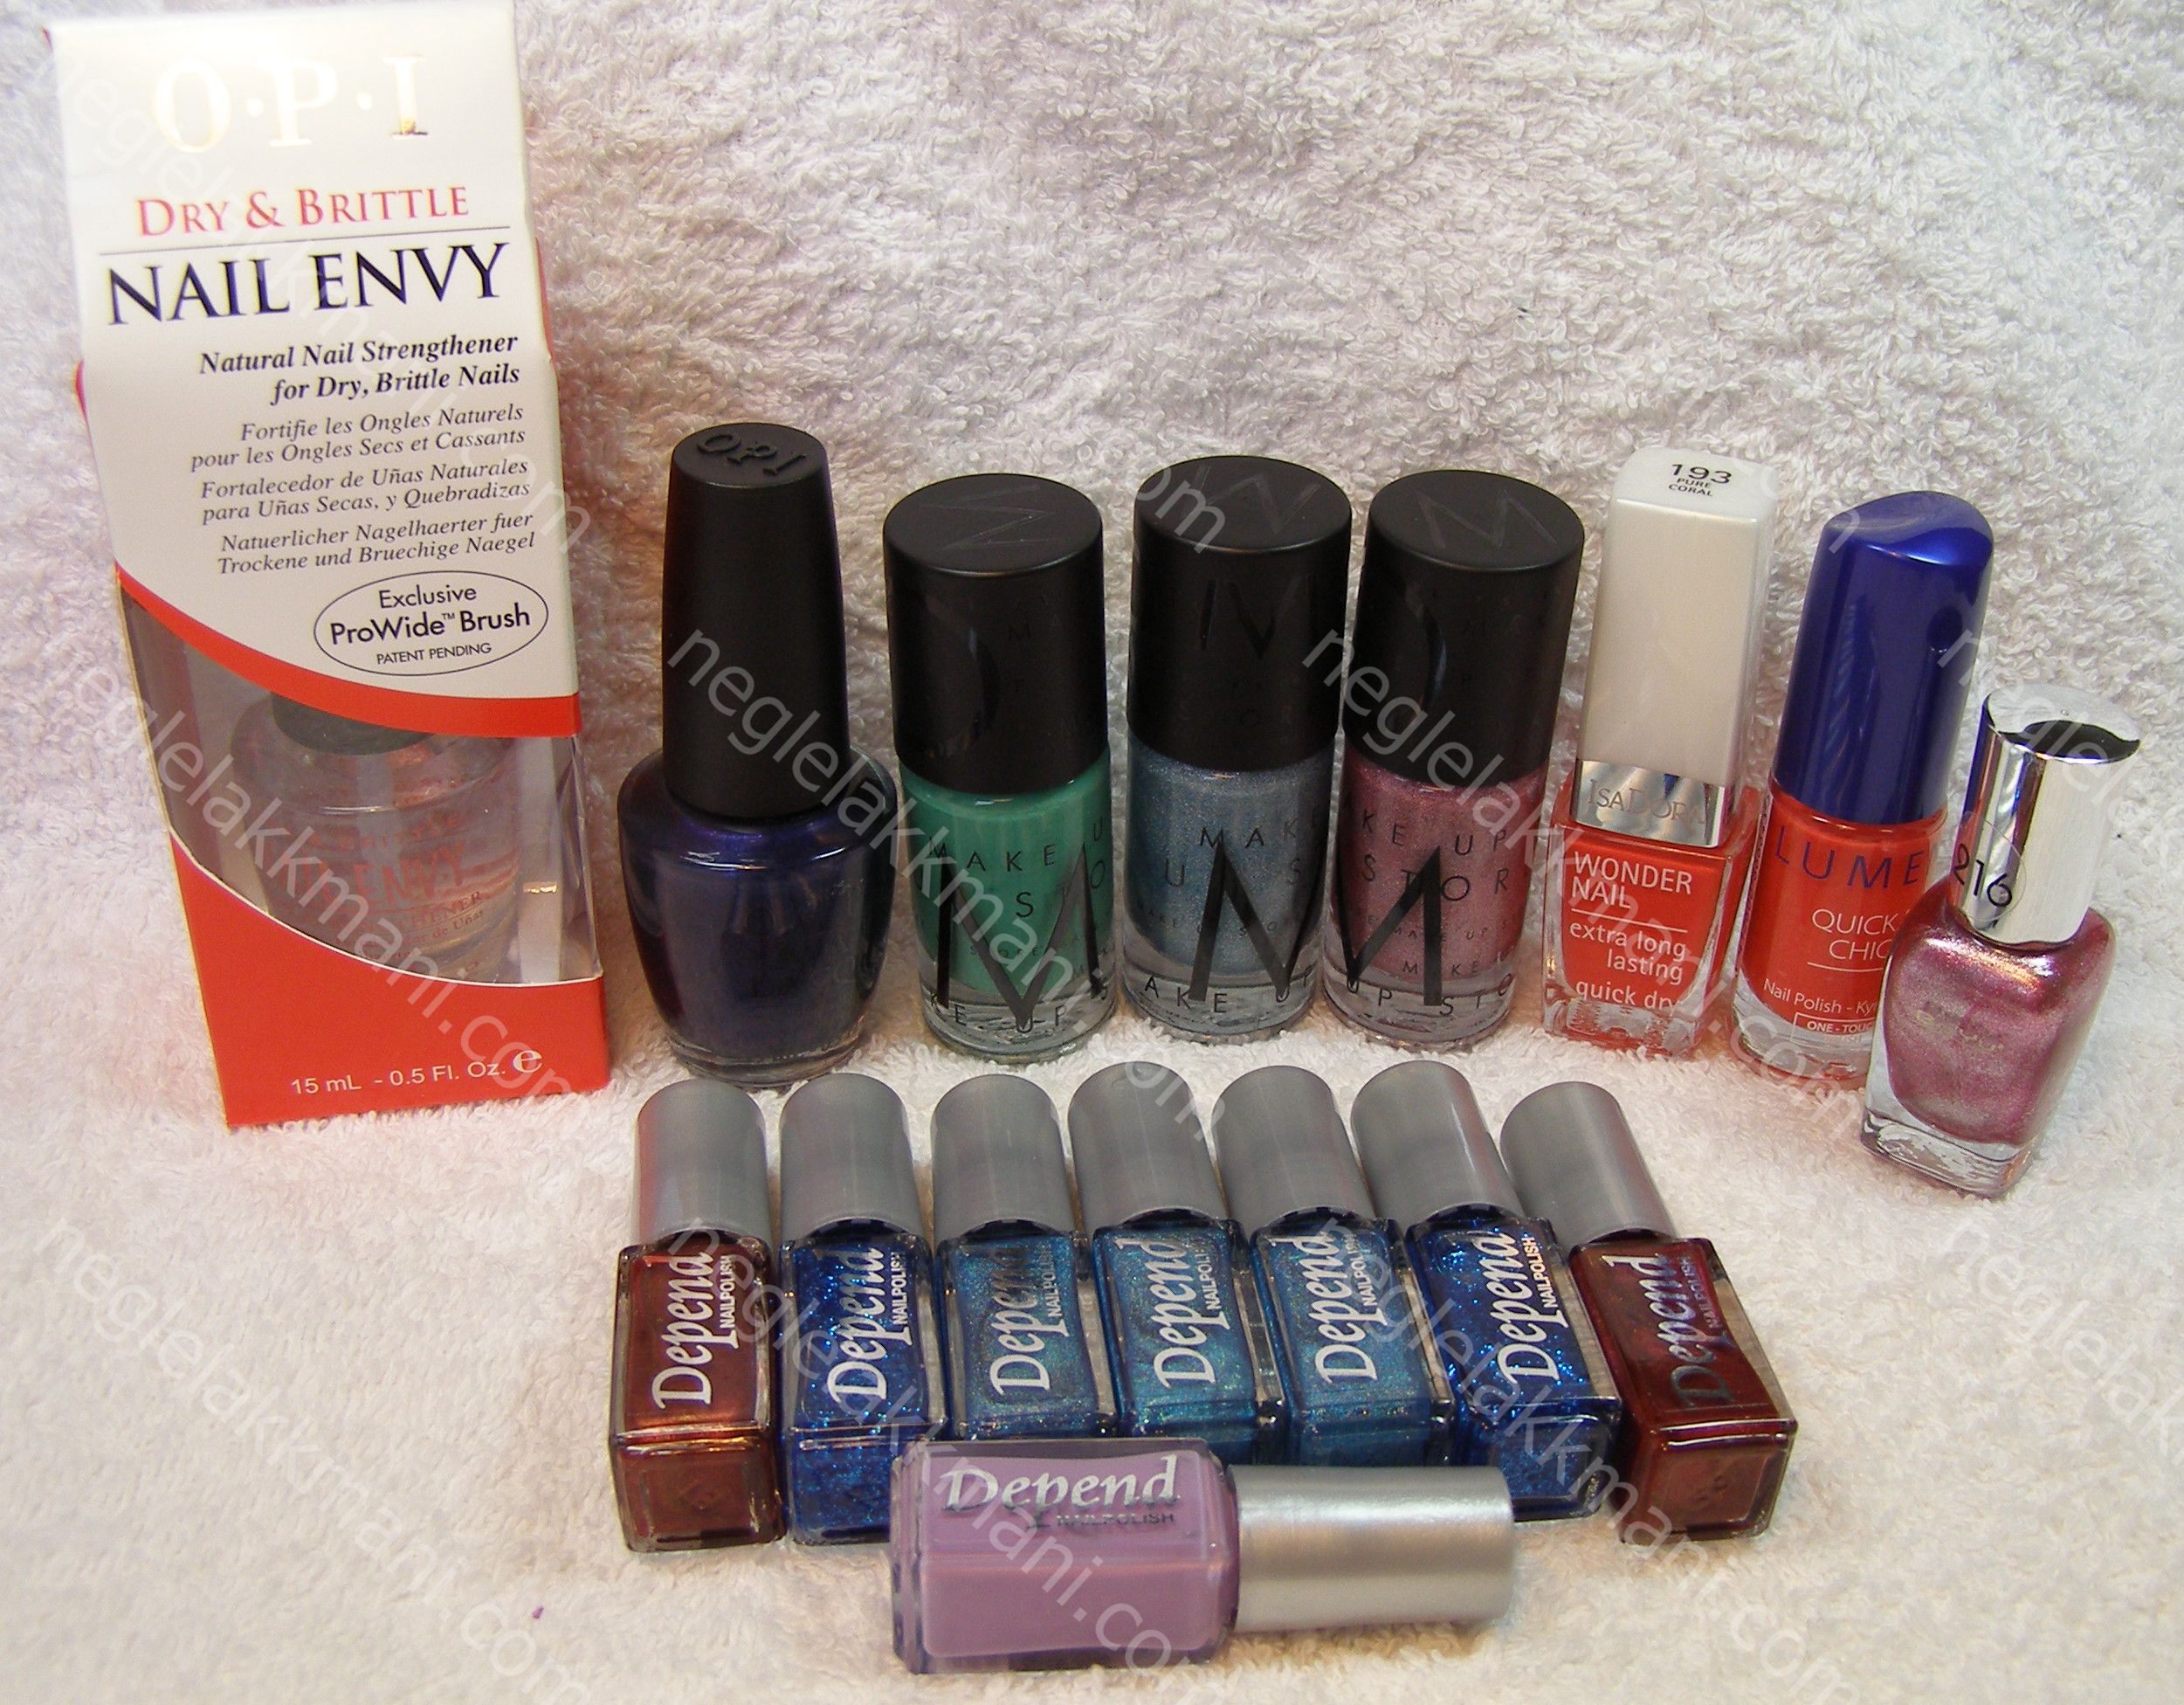 Nail Envy,OPI Play 'til Midnight, MUS Paula,MUS Siw,MUS Britta, Isadora Pure Coral, Lumene Feeling Tricky, BeYu A pink foil and a lot of Depends